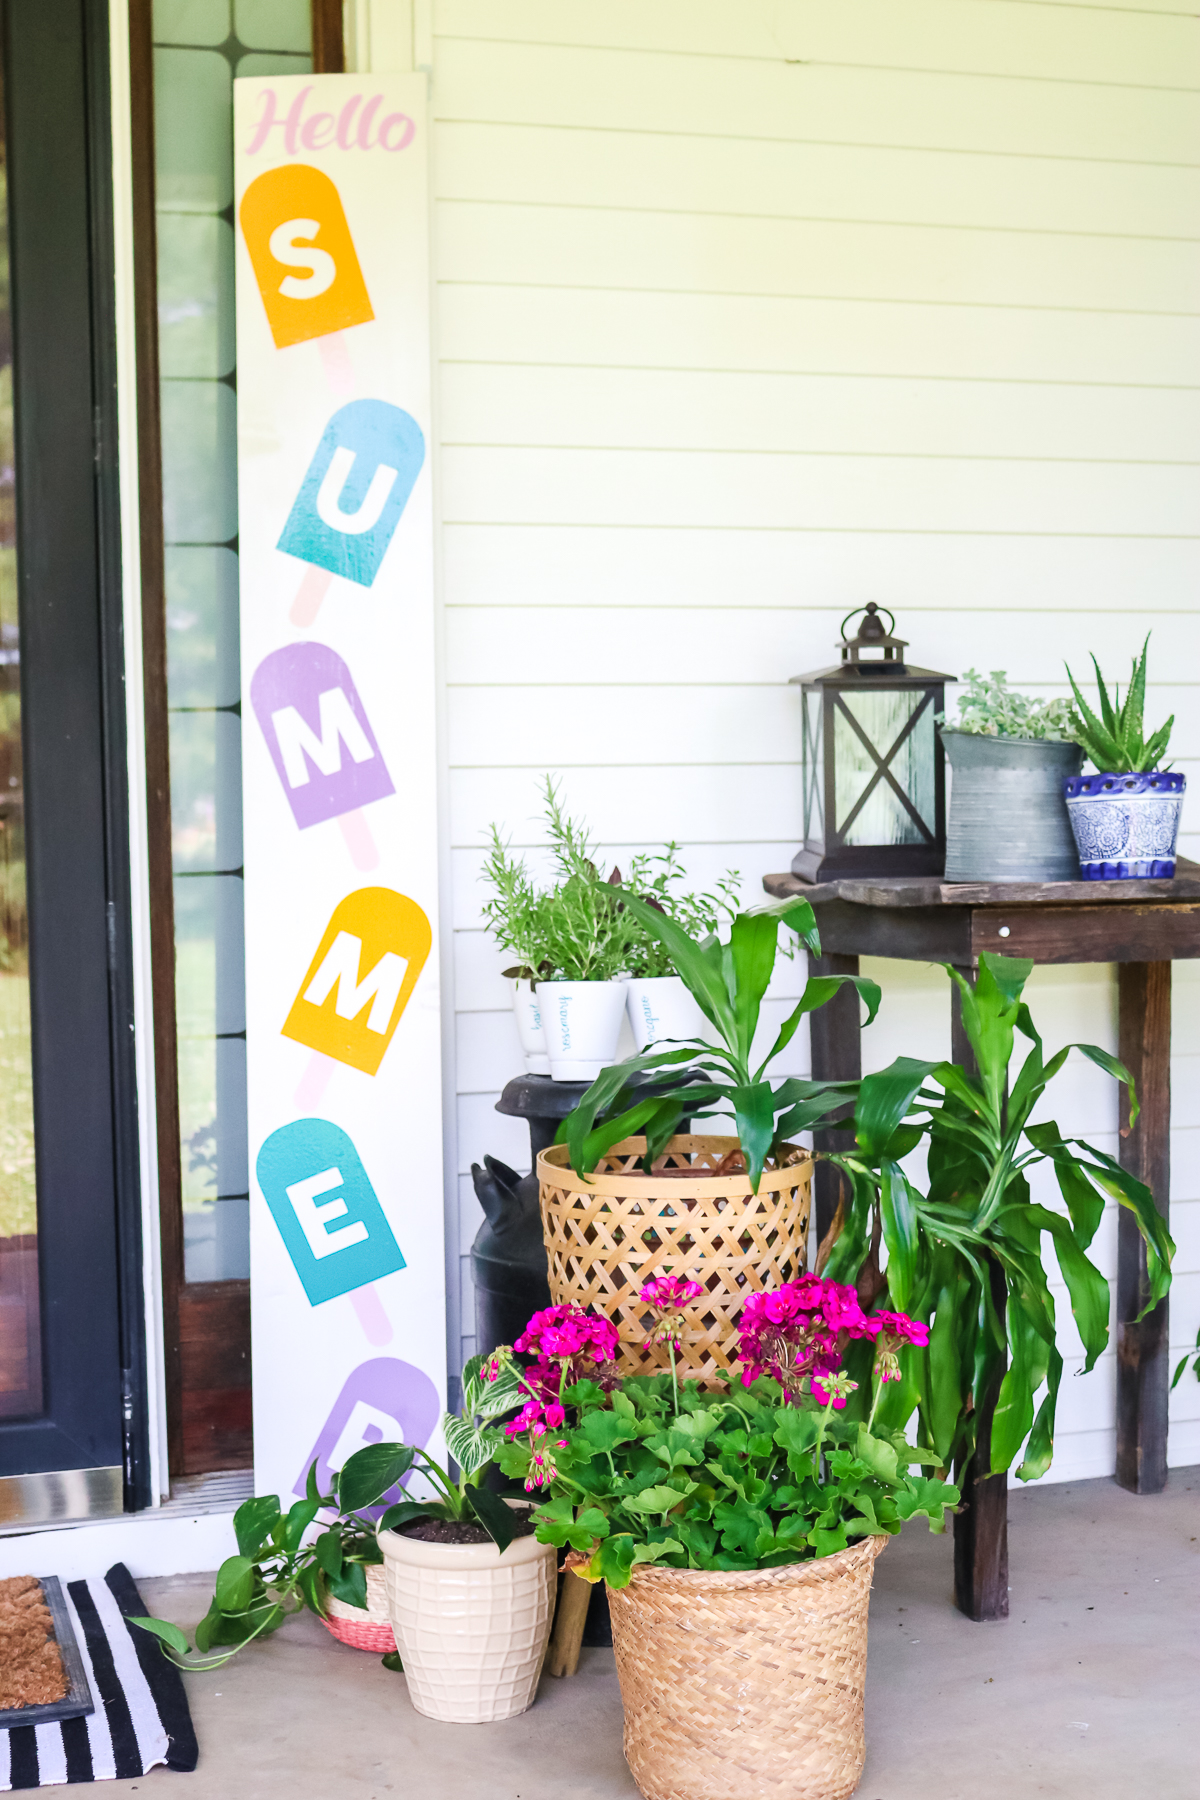 diy welcome sign made on a cricut